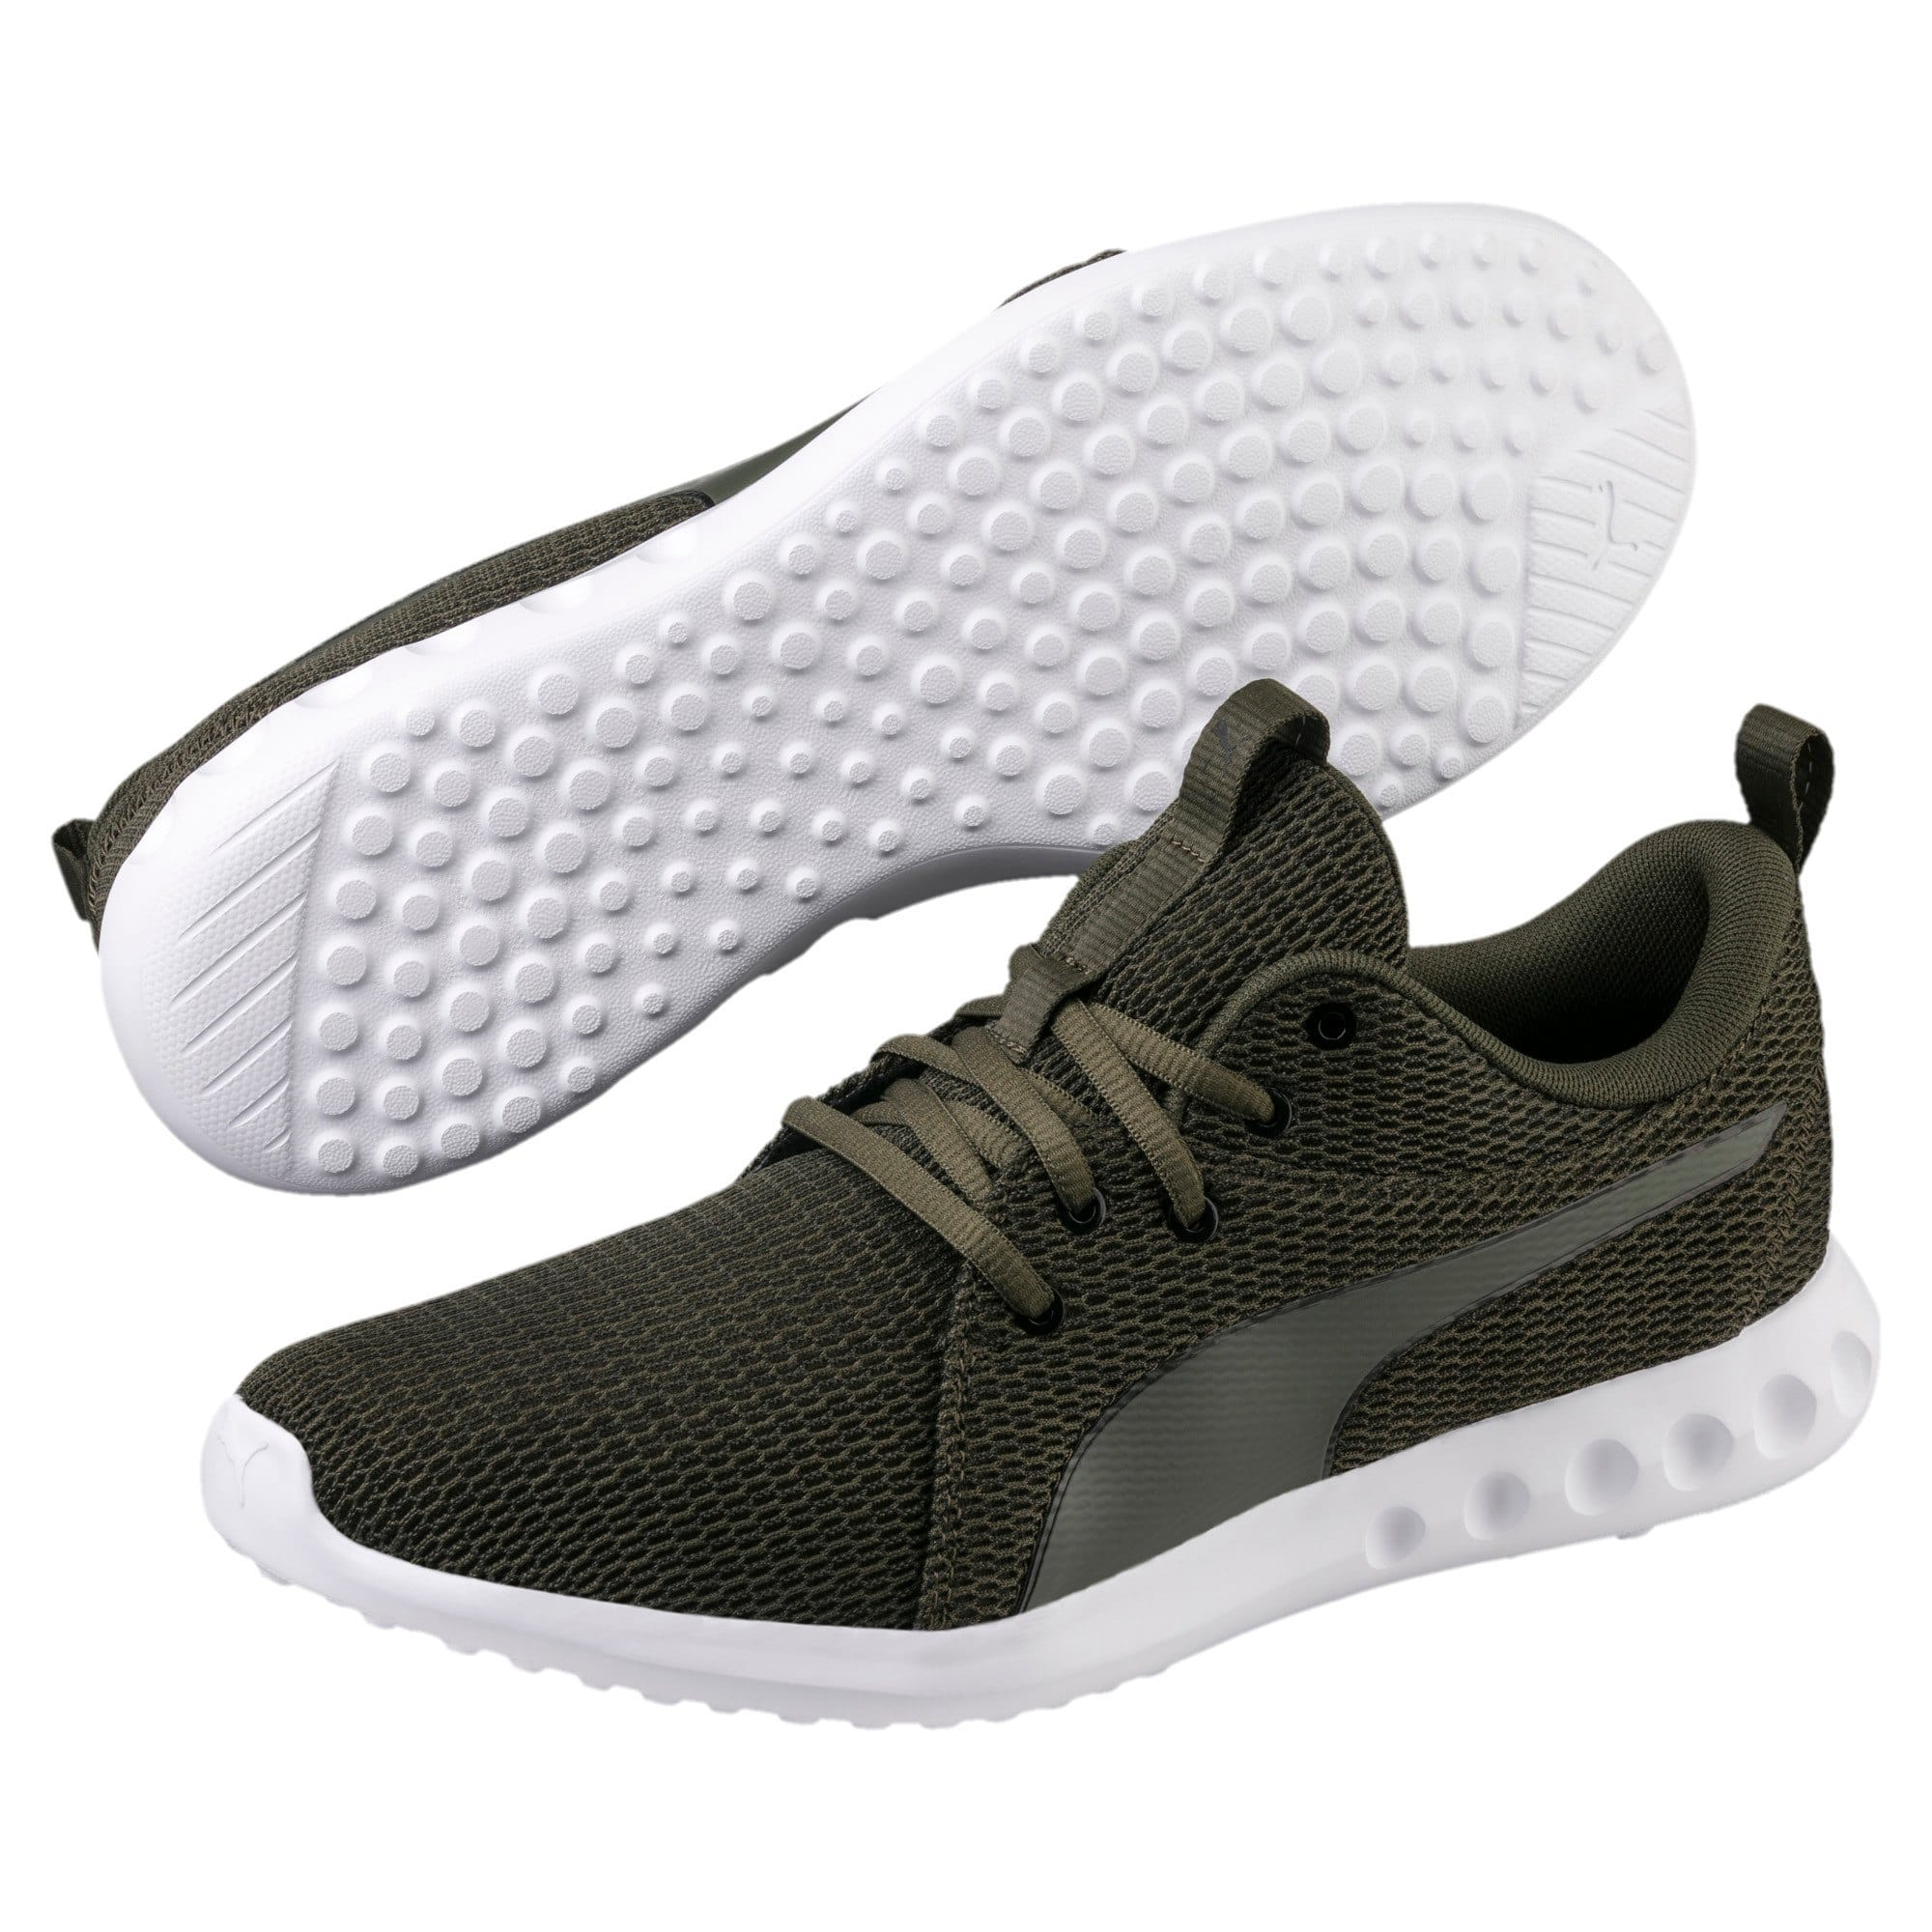 fd0966257c8 Puma Carson 2 New Core Men's Running Shoes (various colors): $29.99 + Free  Shipping